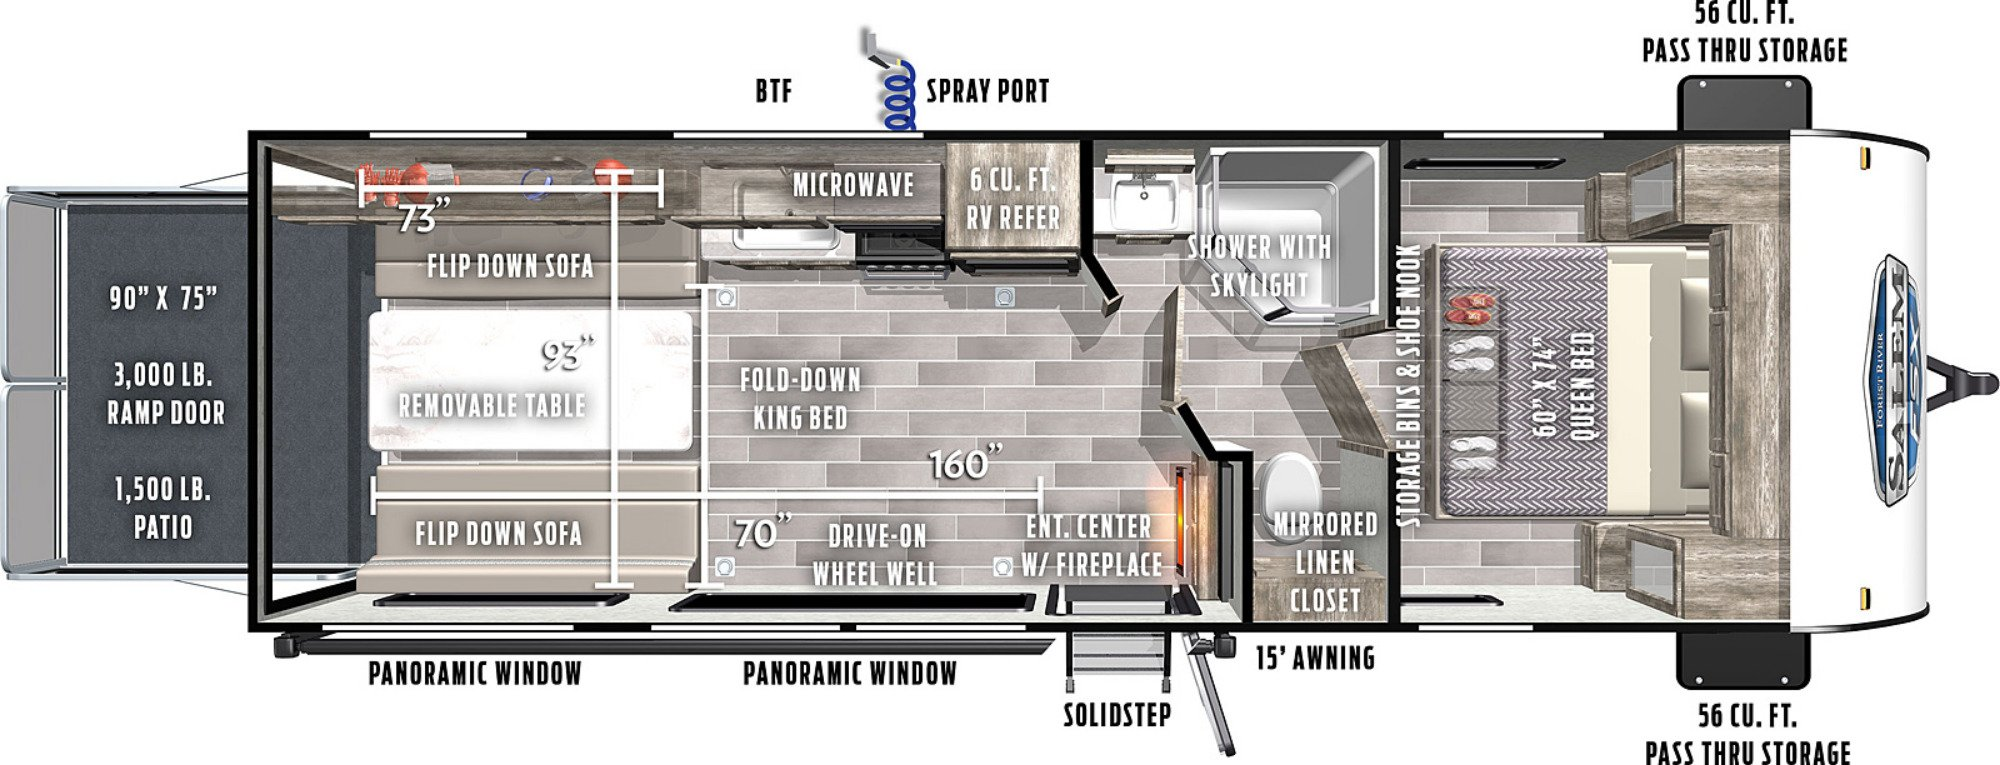 Floor Plan image for '2021 FOREST RIVER SALEM FSX 260RT'